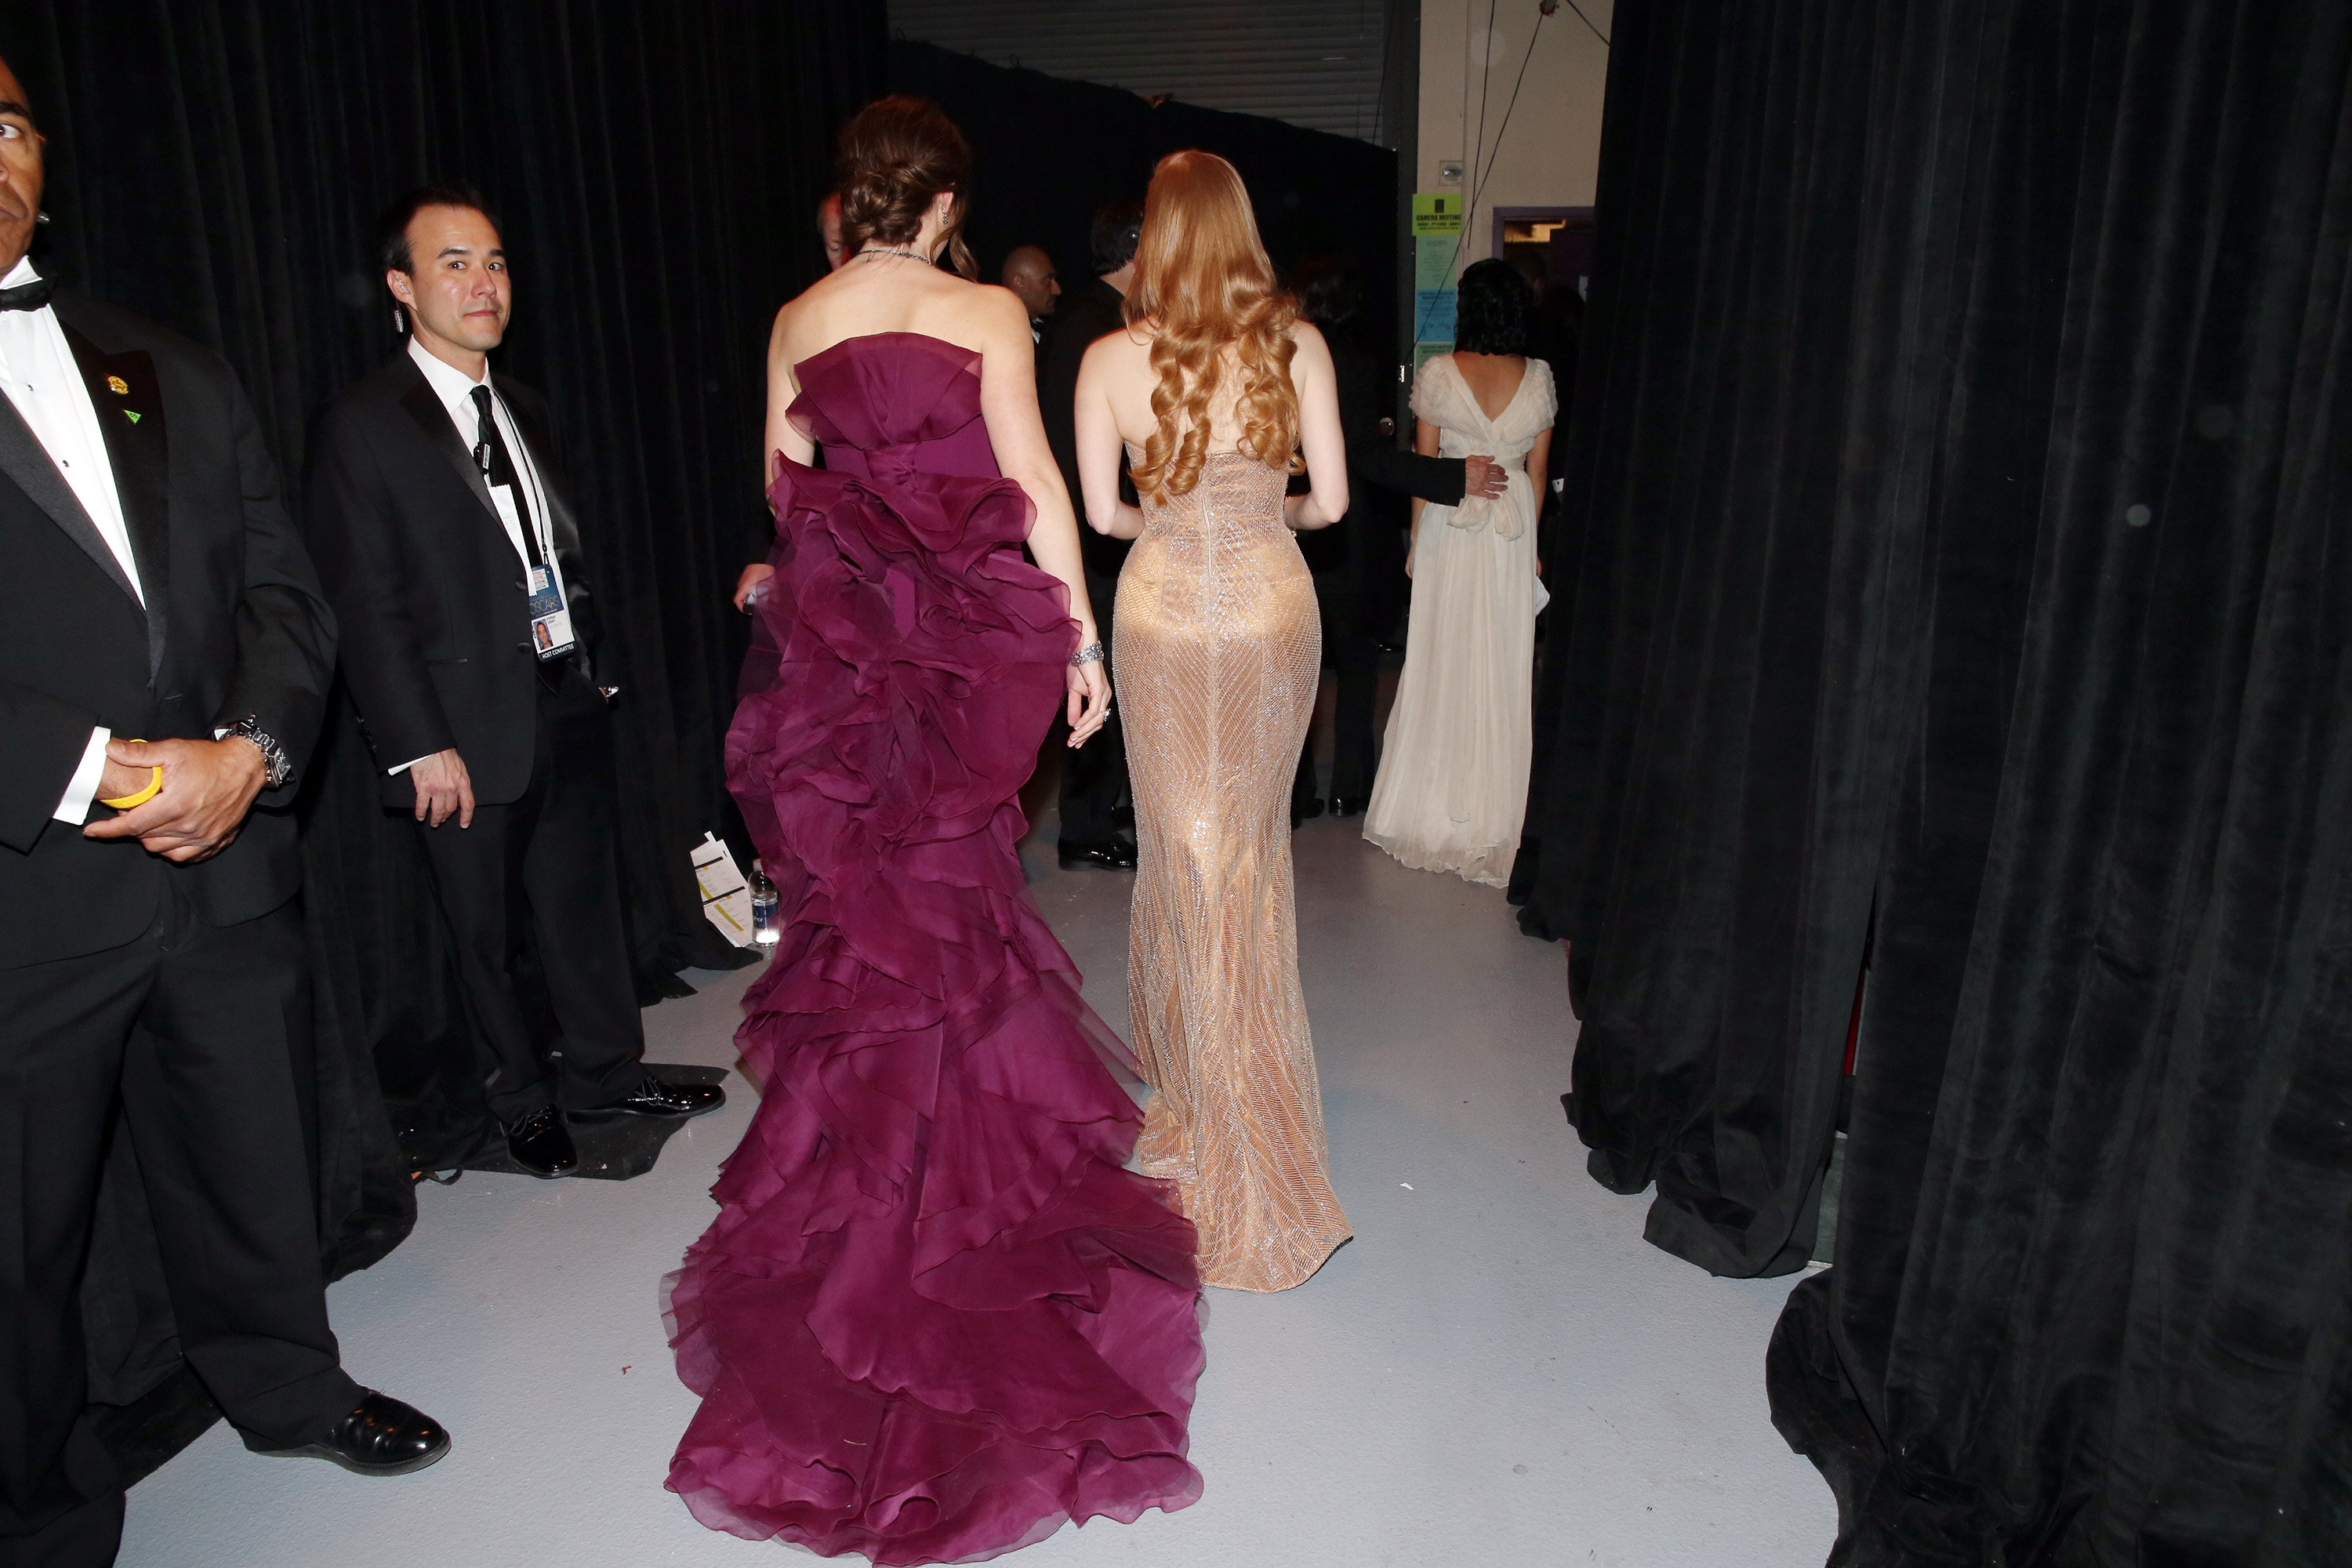 Jennifer Garner and Jessica Chastain backstage at the 2013 Oscars.